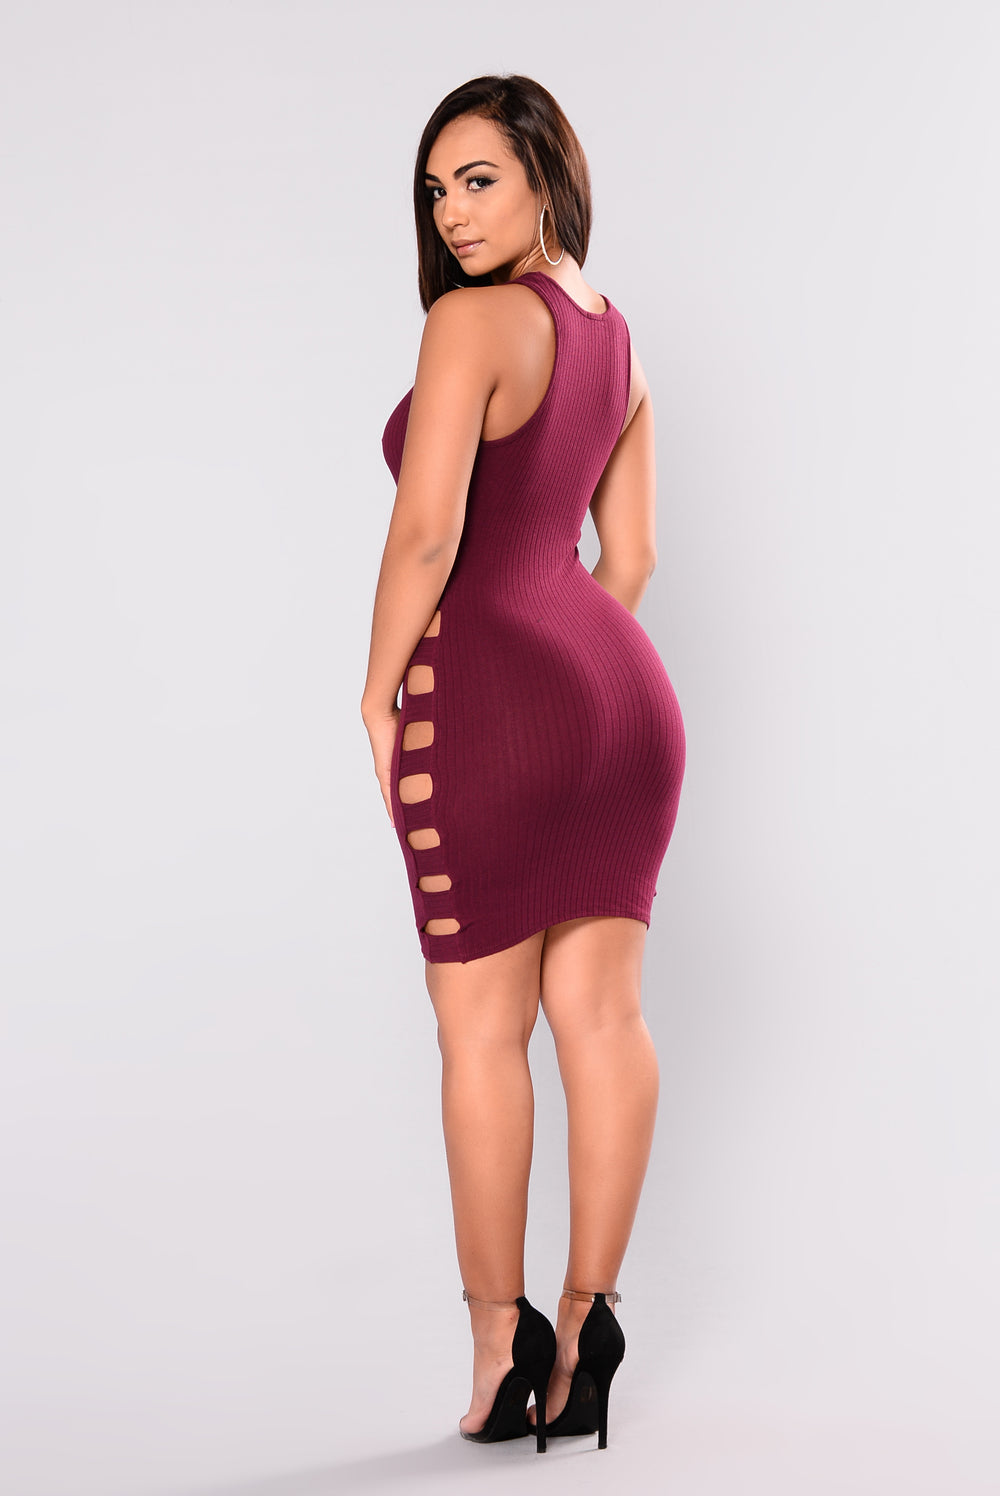 Liraz Cutout Dress - Wine